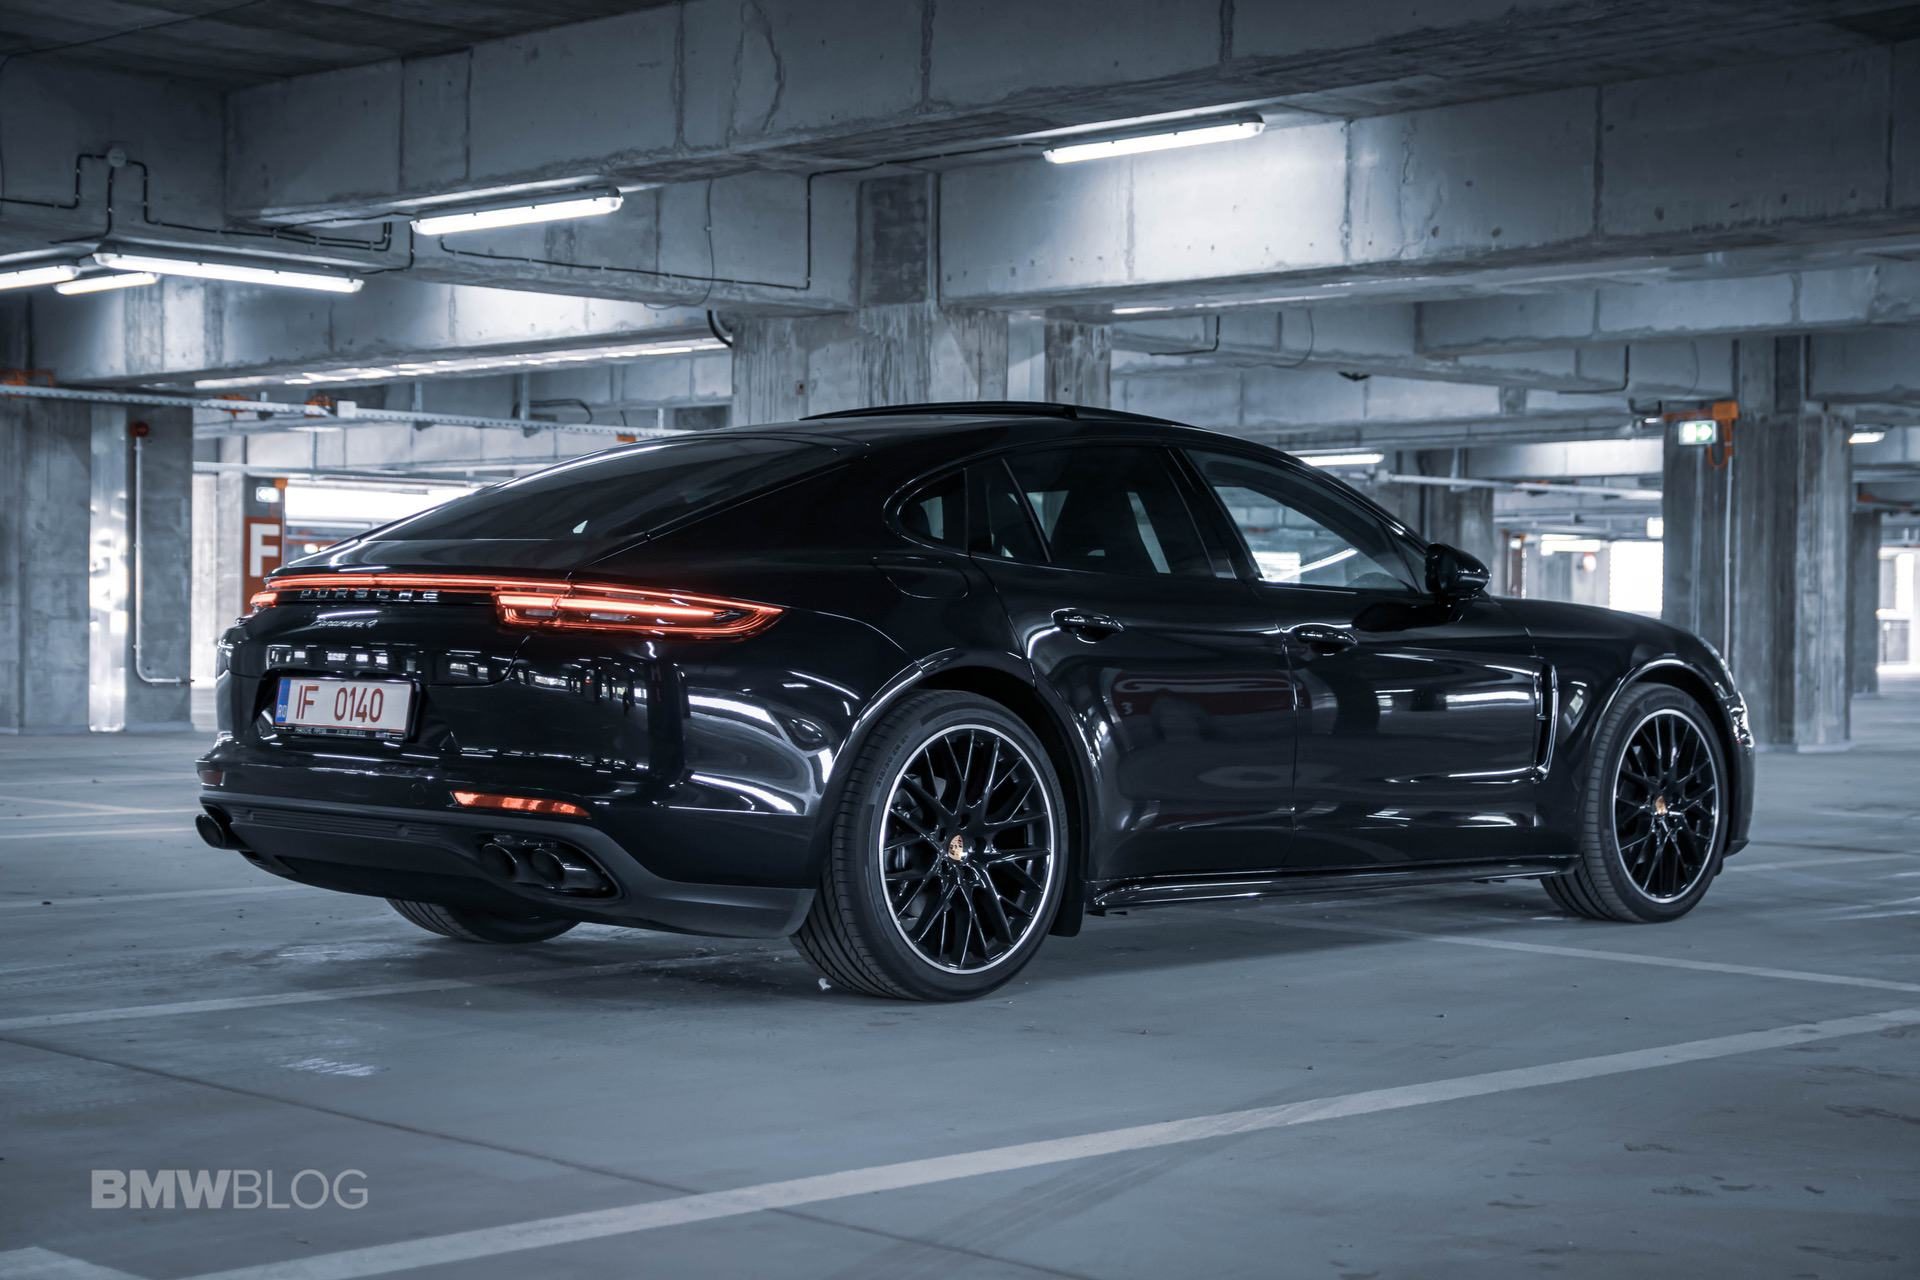 Review 2020 Porsche Panamera As Good As It Gets Upcoming Cars Library Up To Date